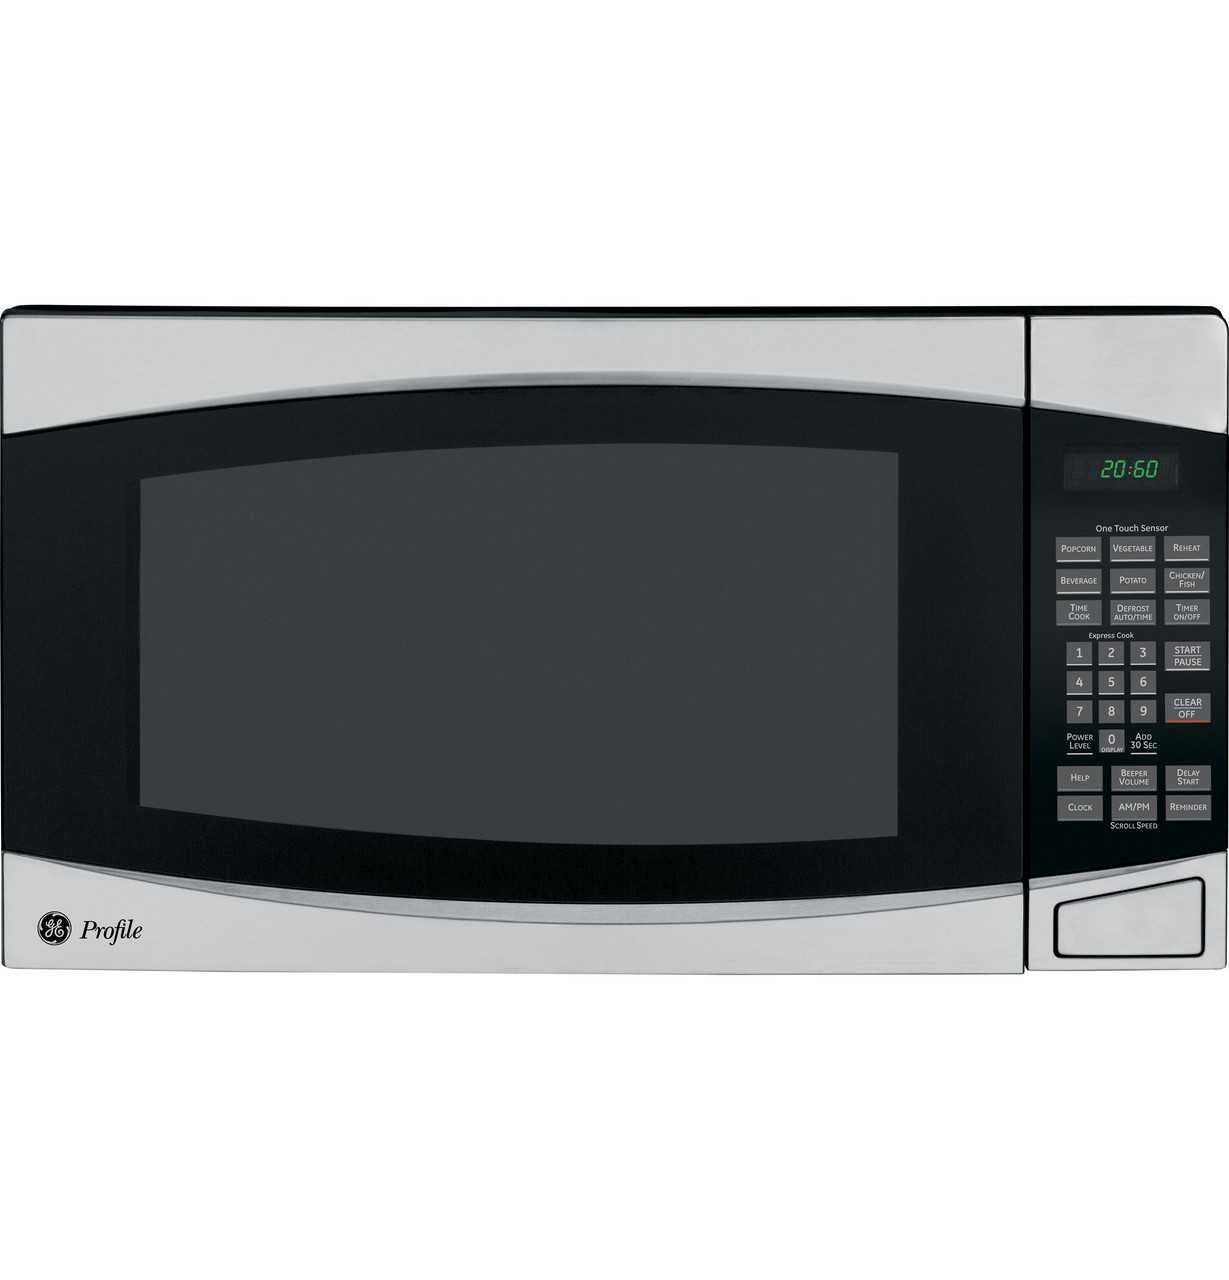 ge profile 2 0 cu ft countertop microwave oven peb2060smss